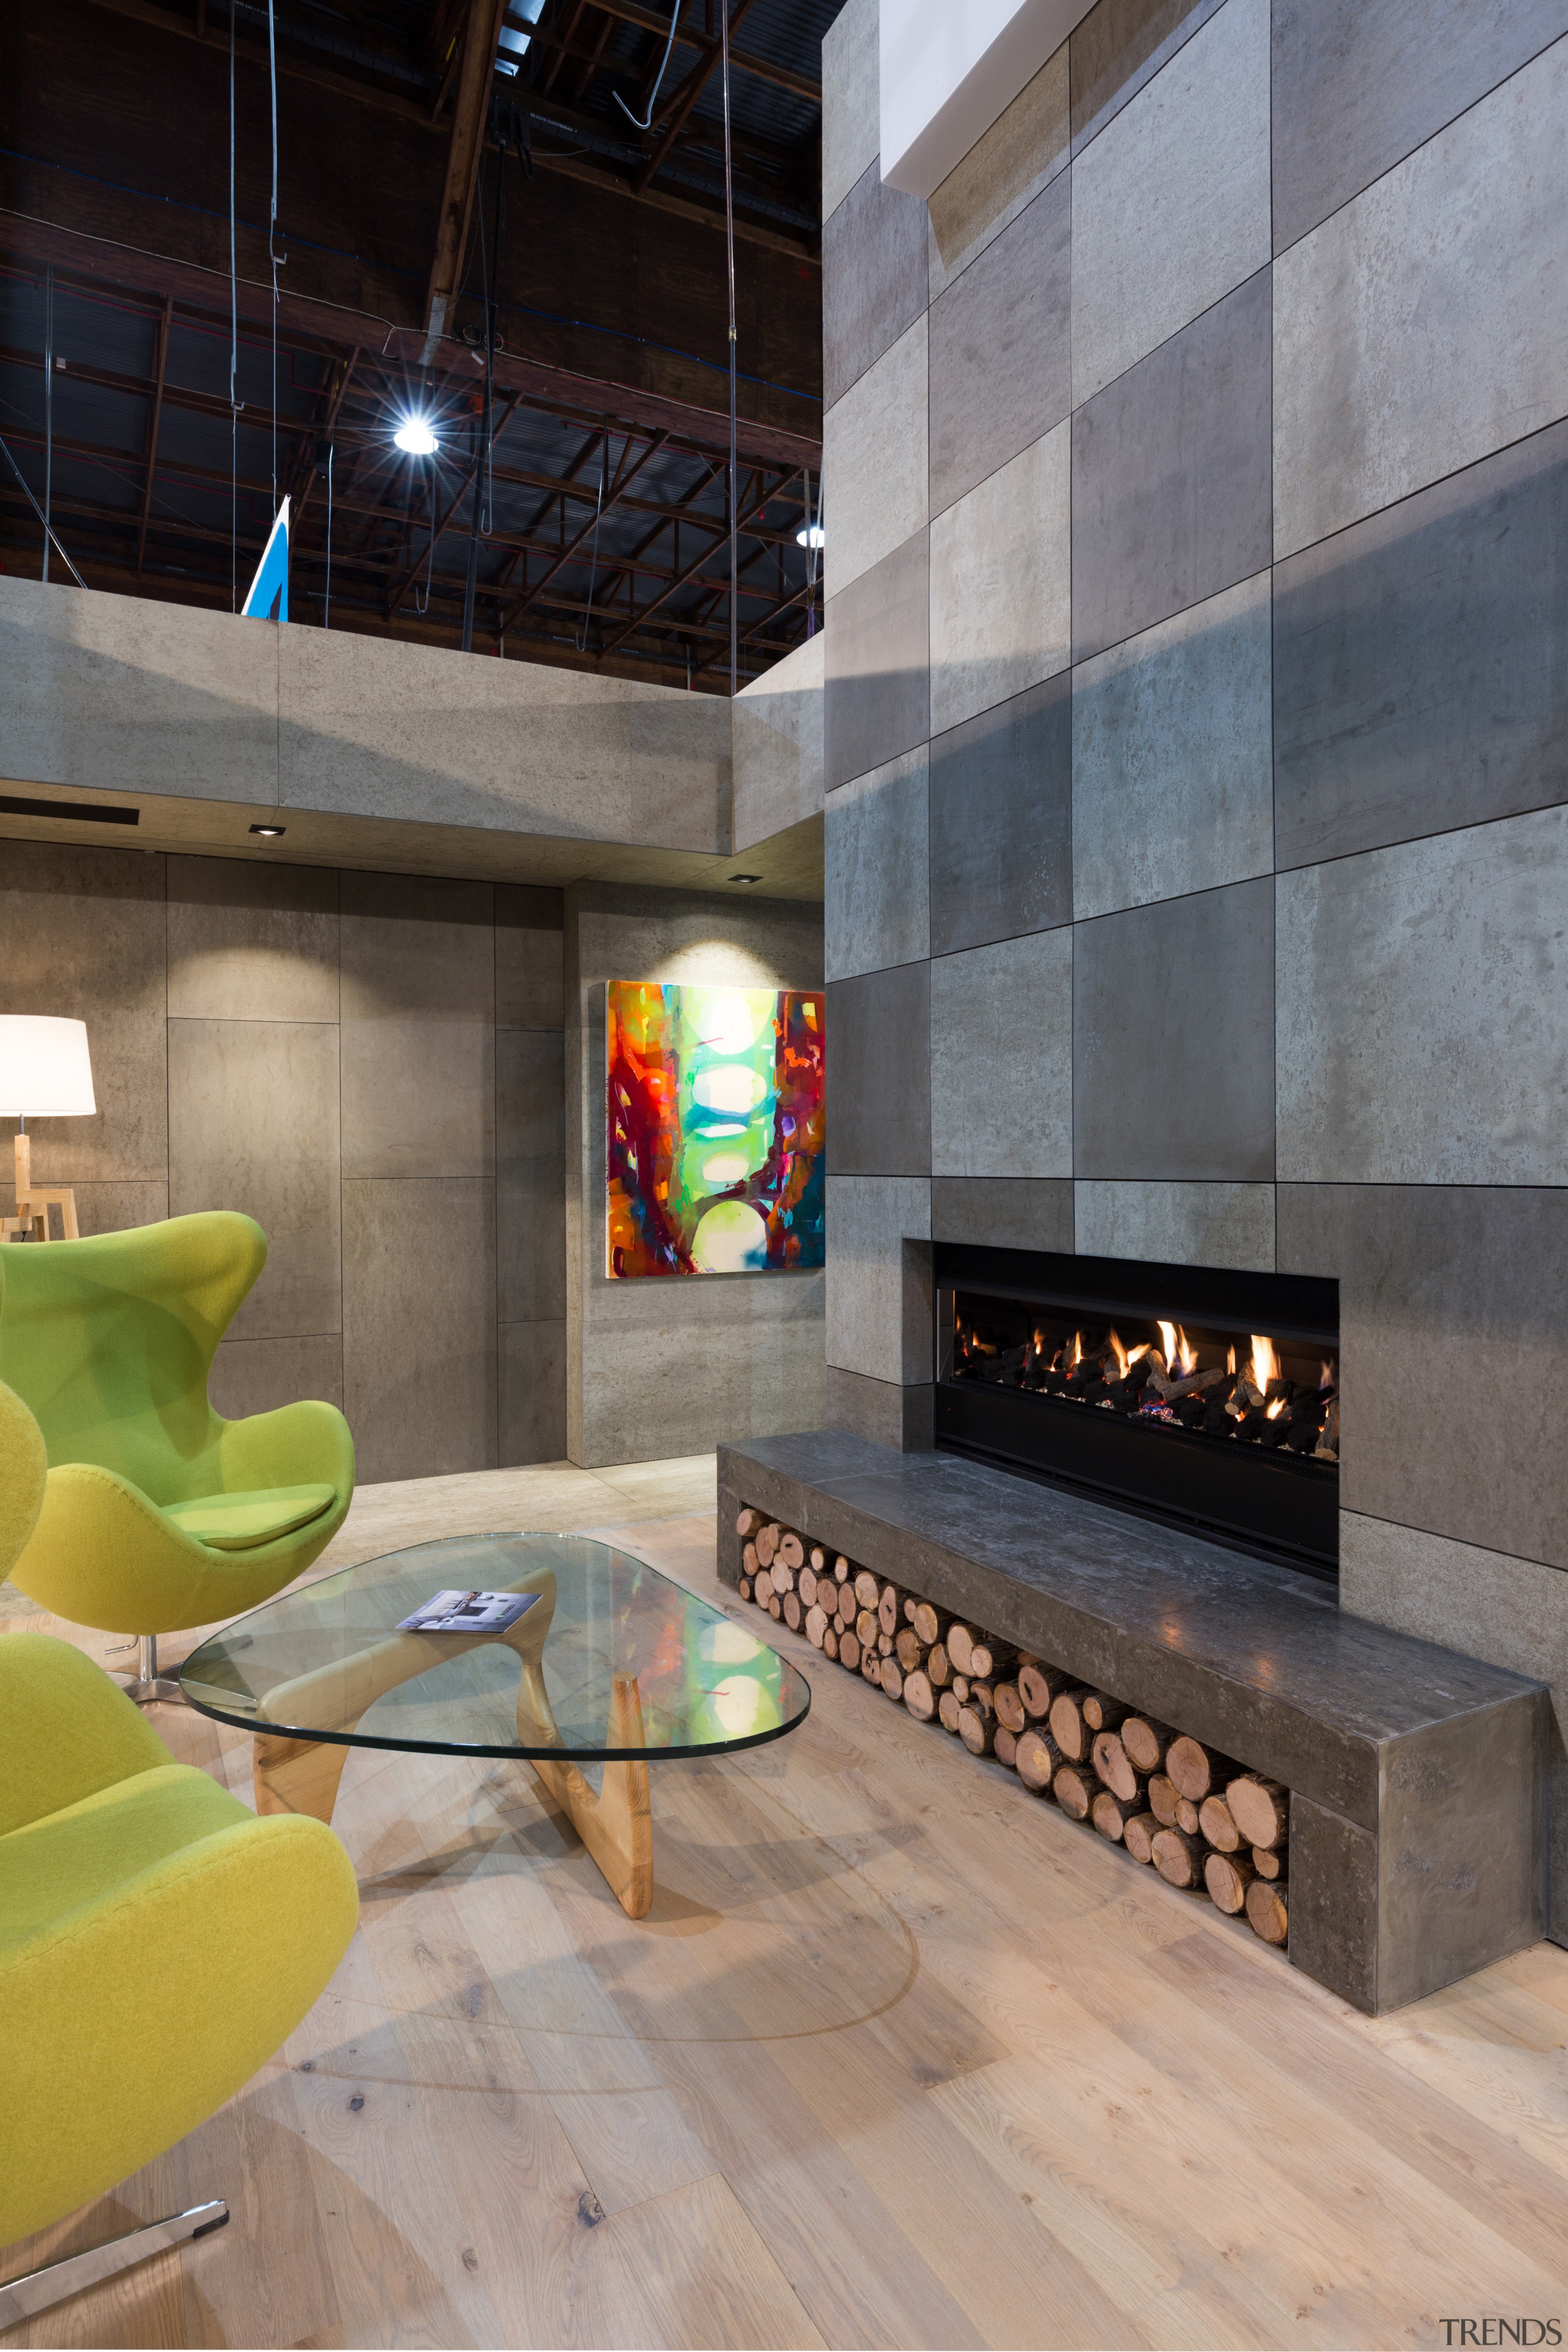 IMG_6175 - architecture | fireplace | floor | architecture, fireplace, floor, flooring, hearth, interior design, living room, lobby, loft, wall, gray